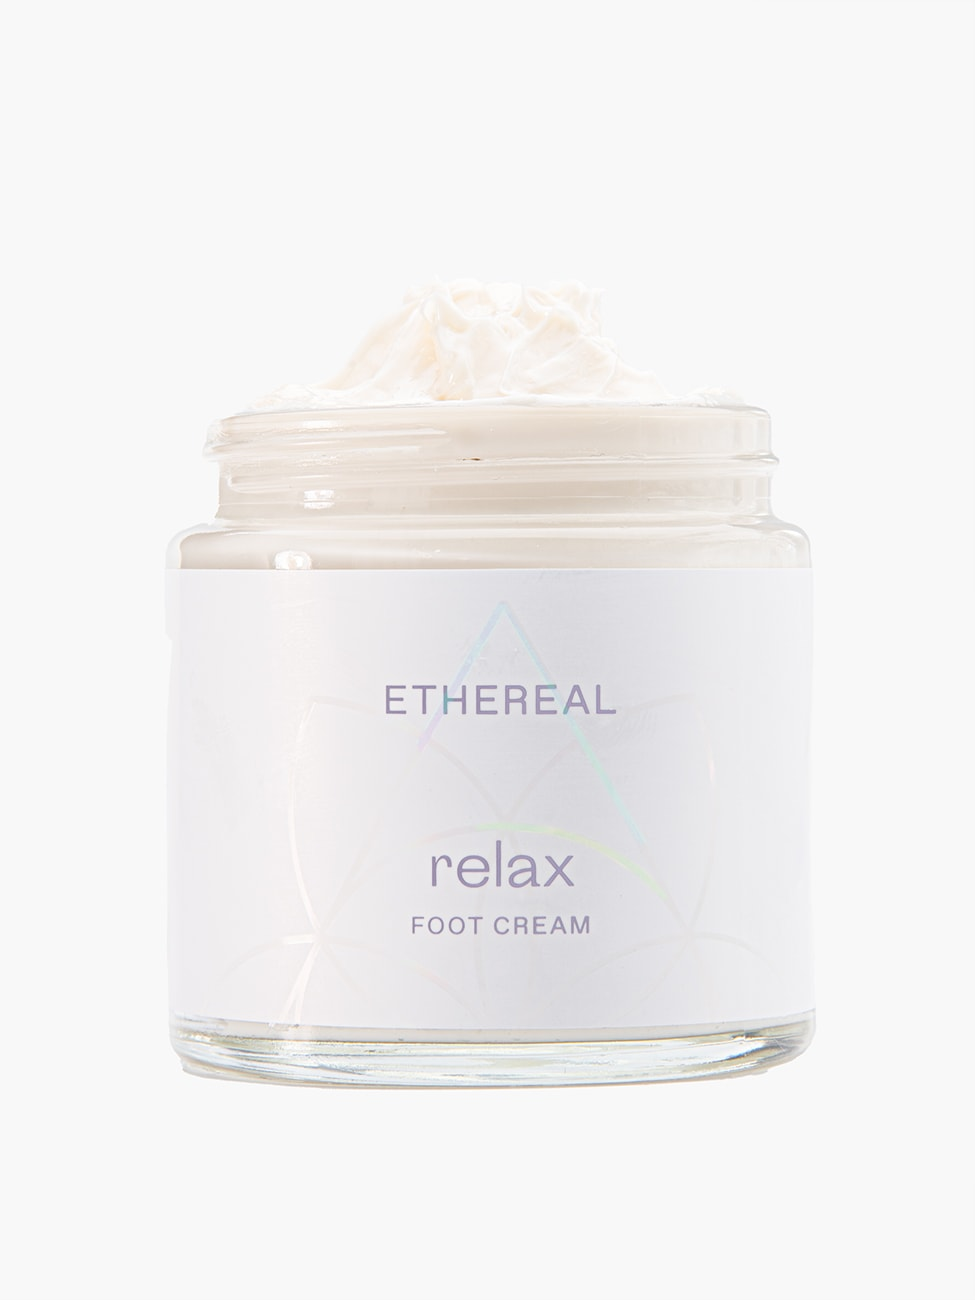 Relax_Cream_Texture_Ethereal_Dermocosmetics_Skincare_Handmade_Greek_Products